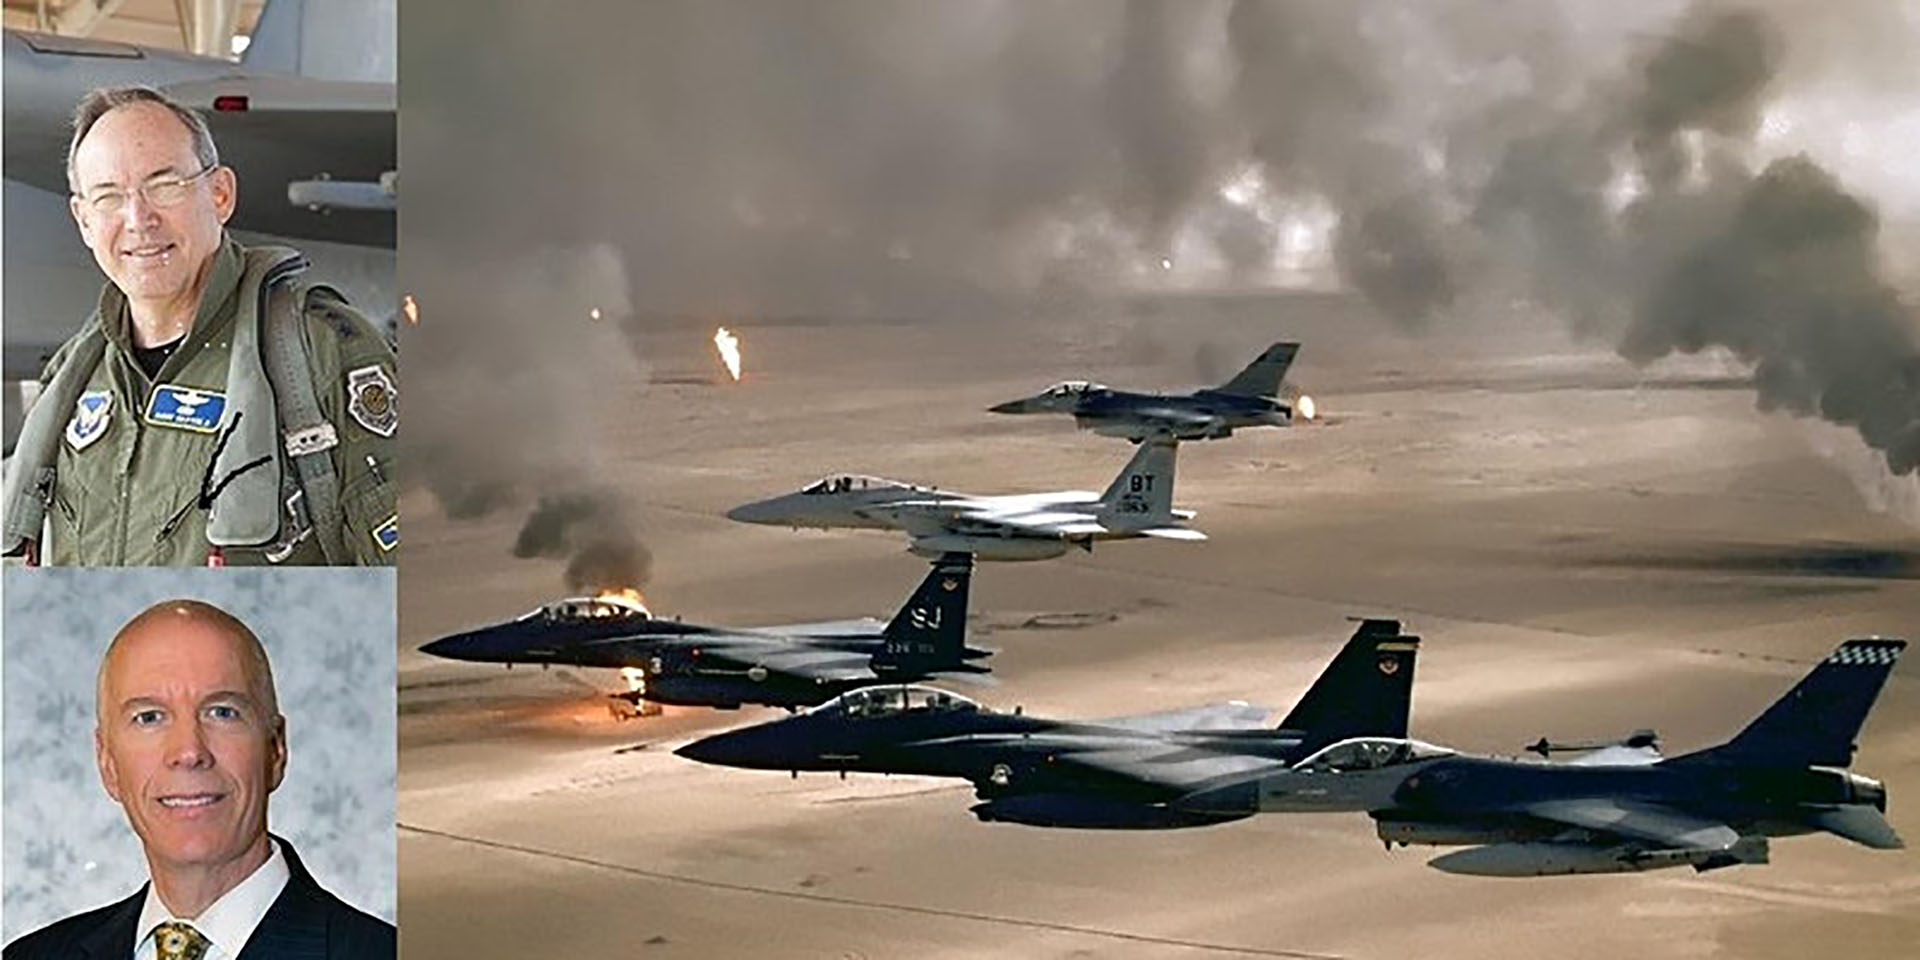 Desert Storm air campaign to be covered, Aug. 29